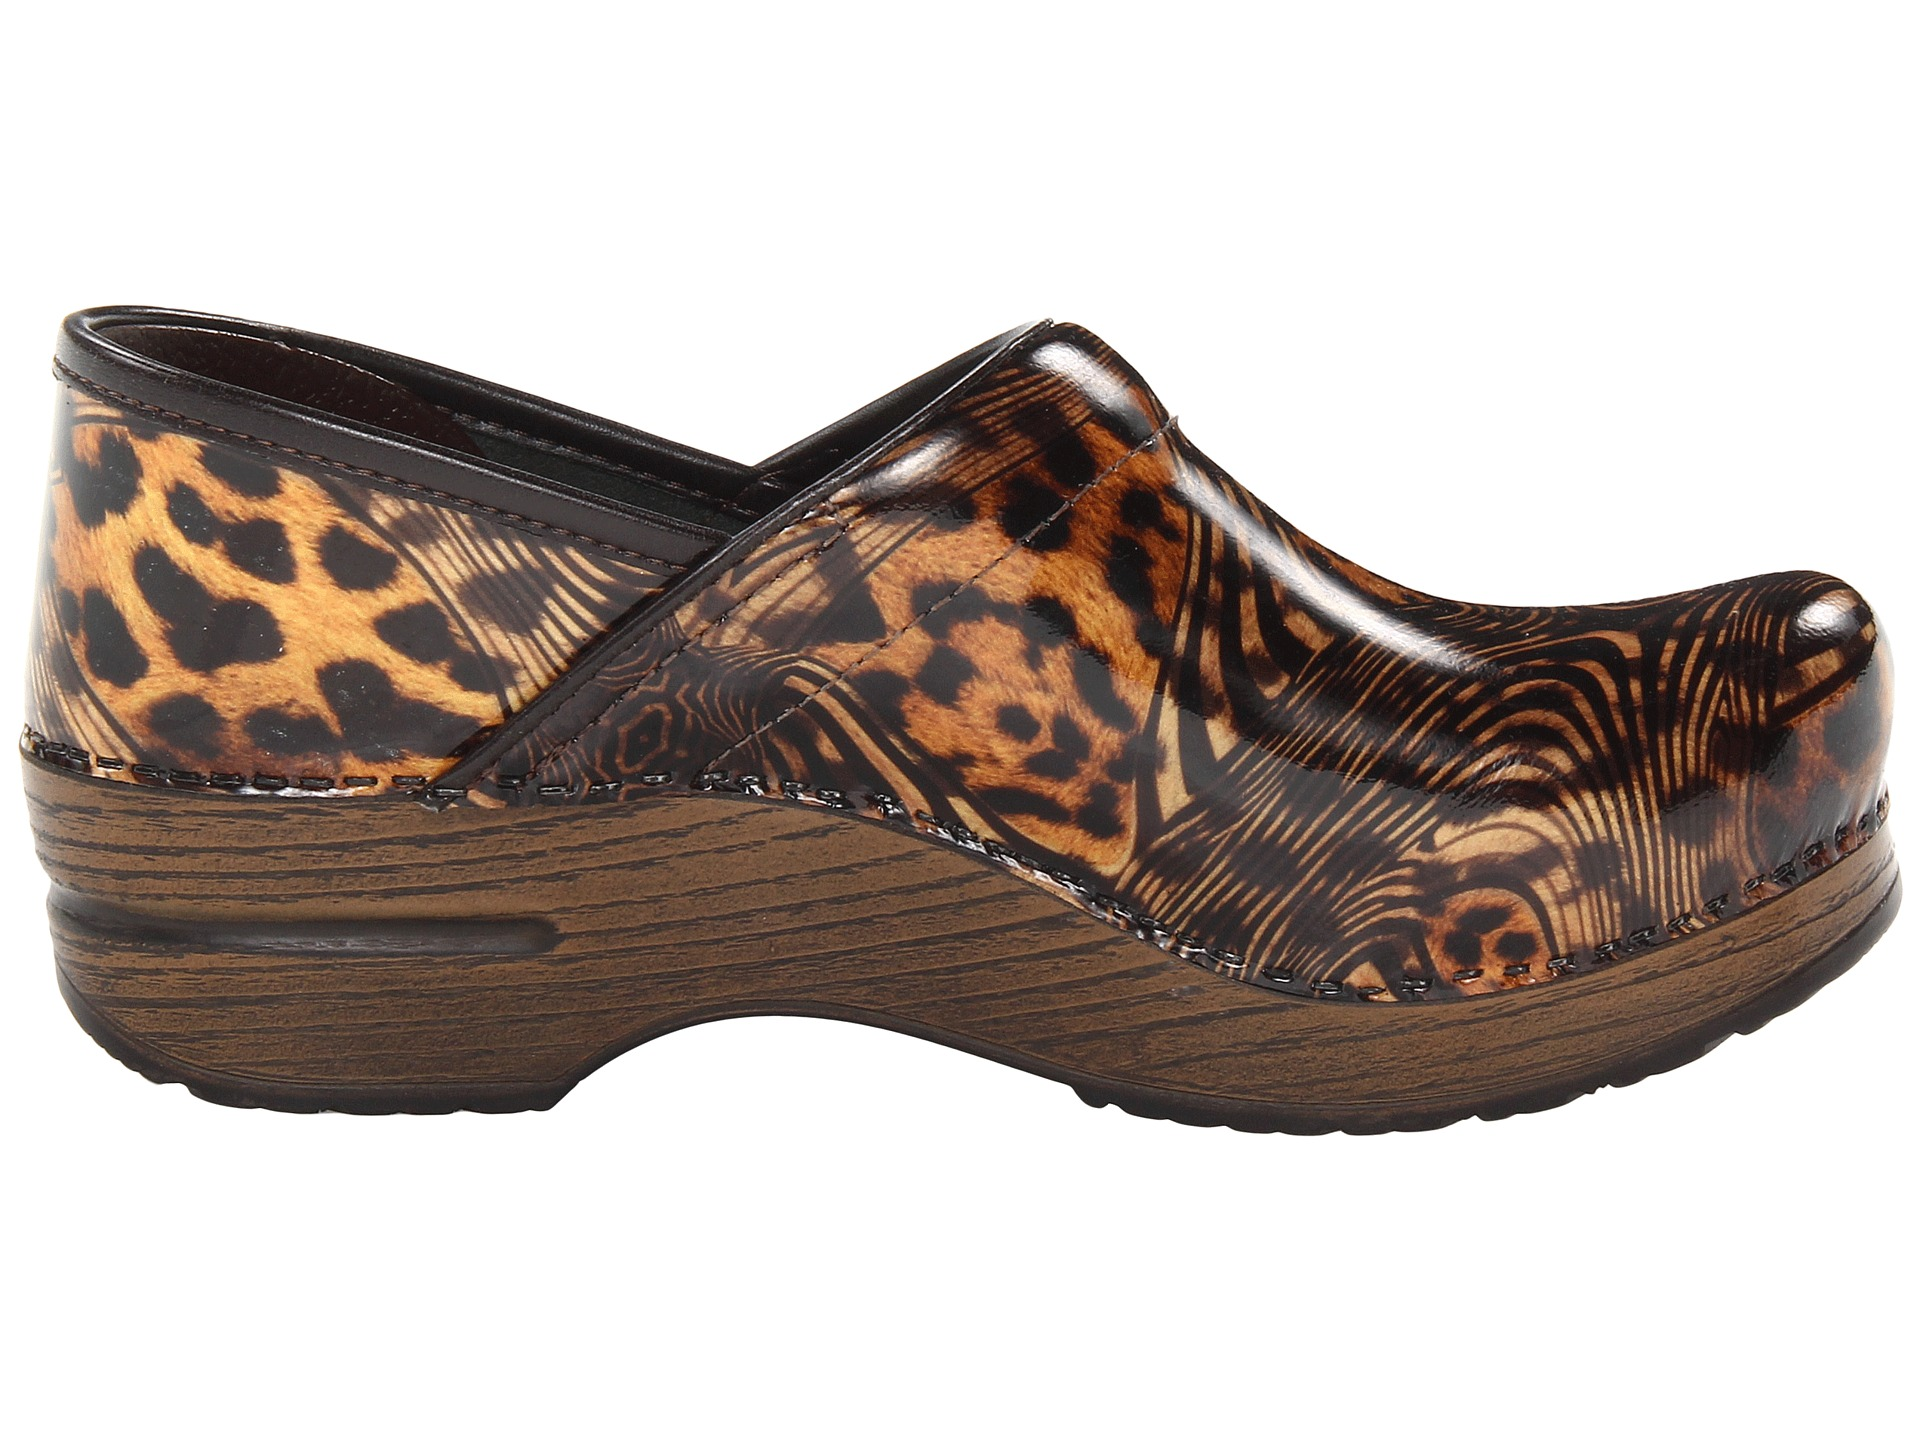 Dansko Professional Zappos Com Free Shipping Both Ways